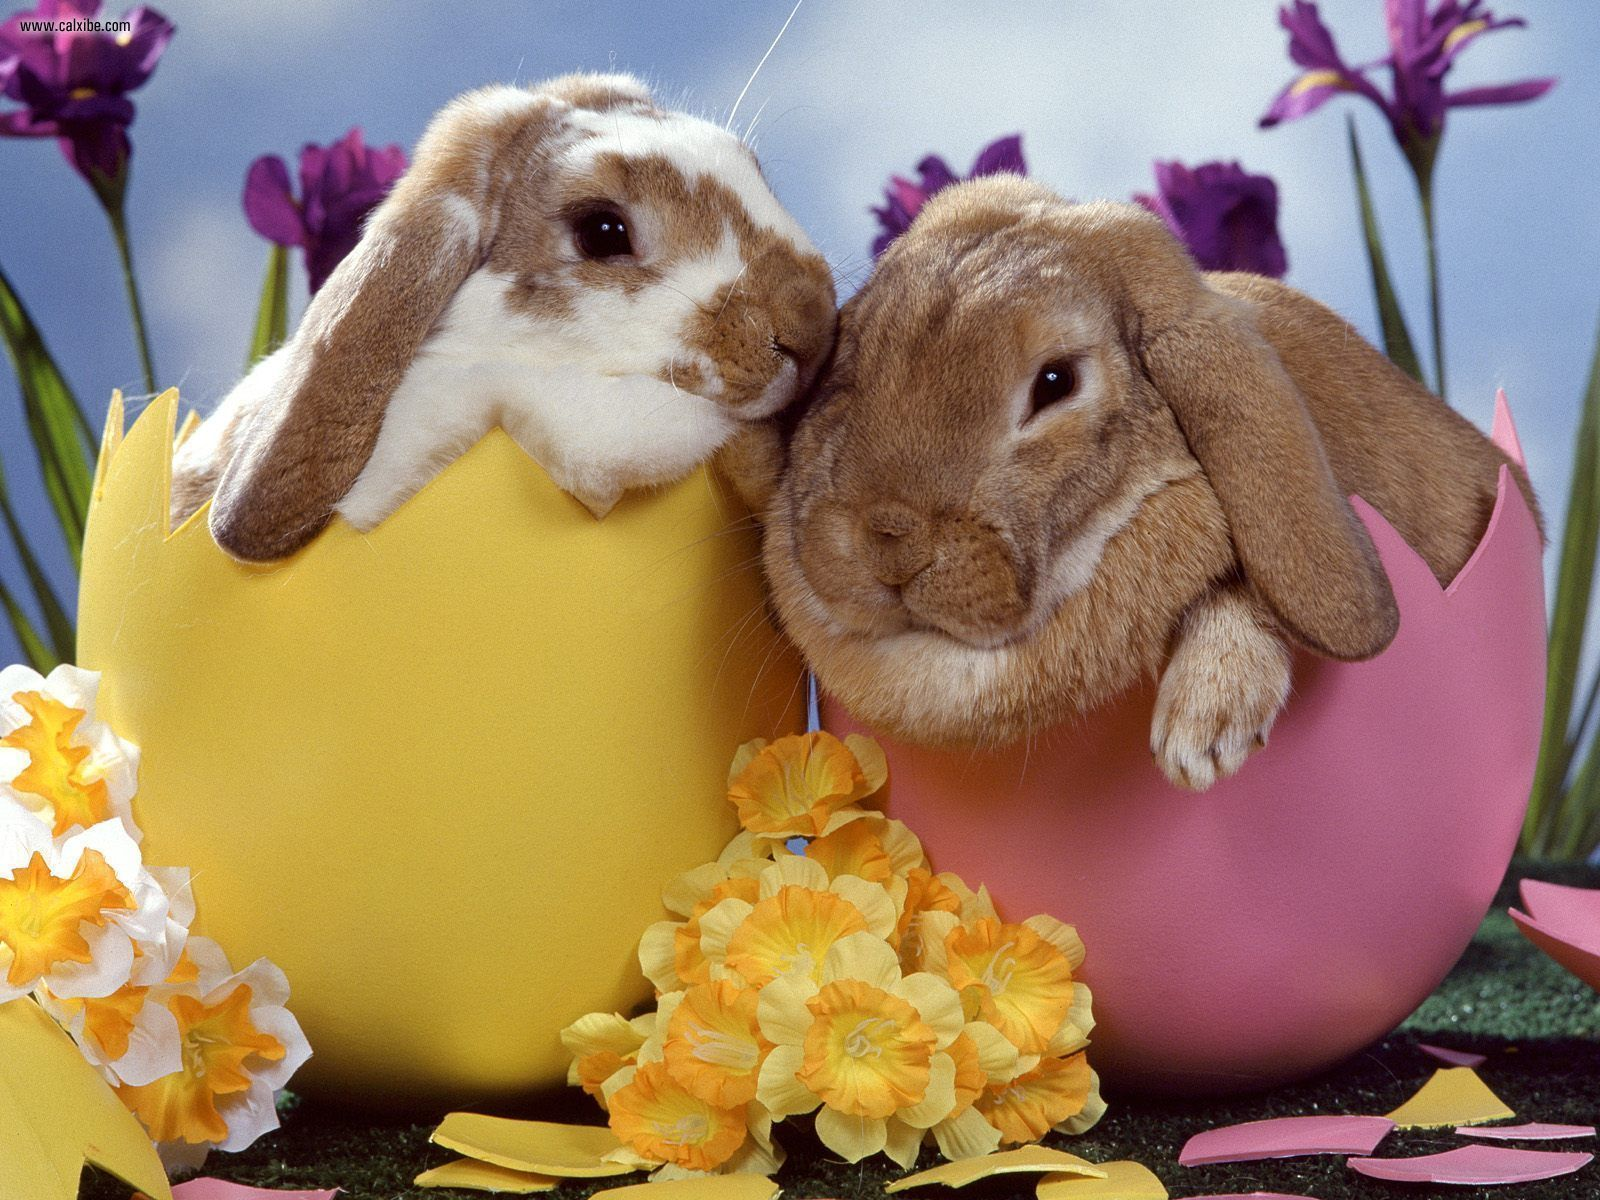 Easter Bunny Wallpaper High Definition High Quality Widescreen